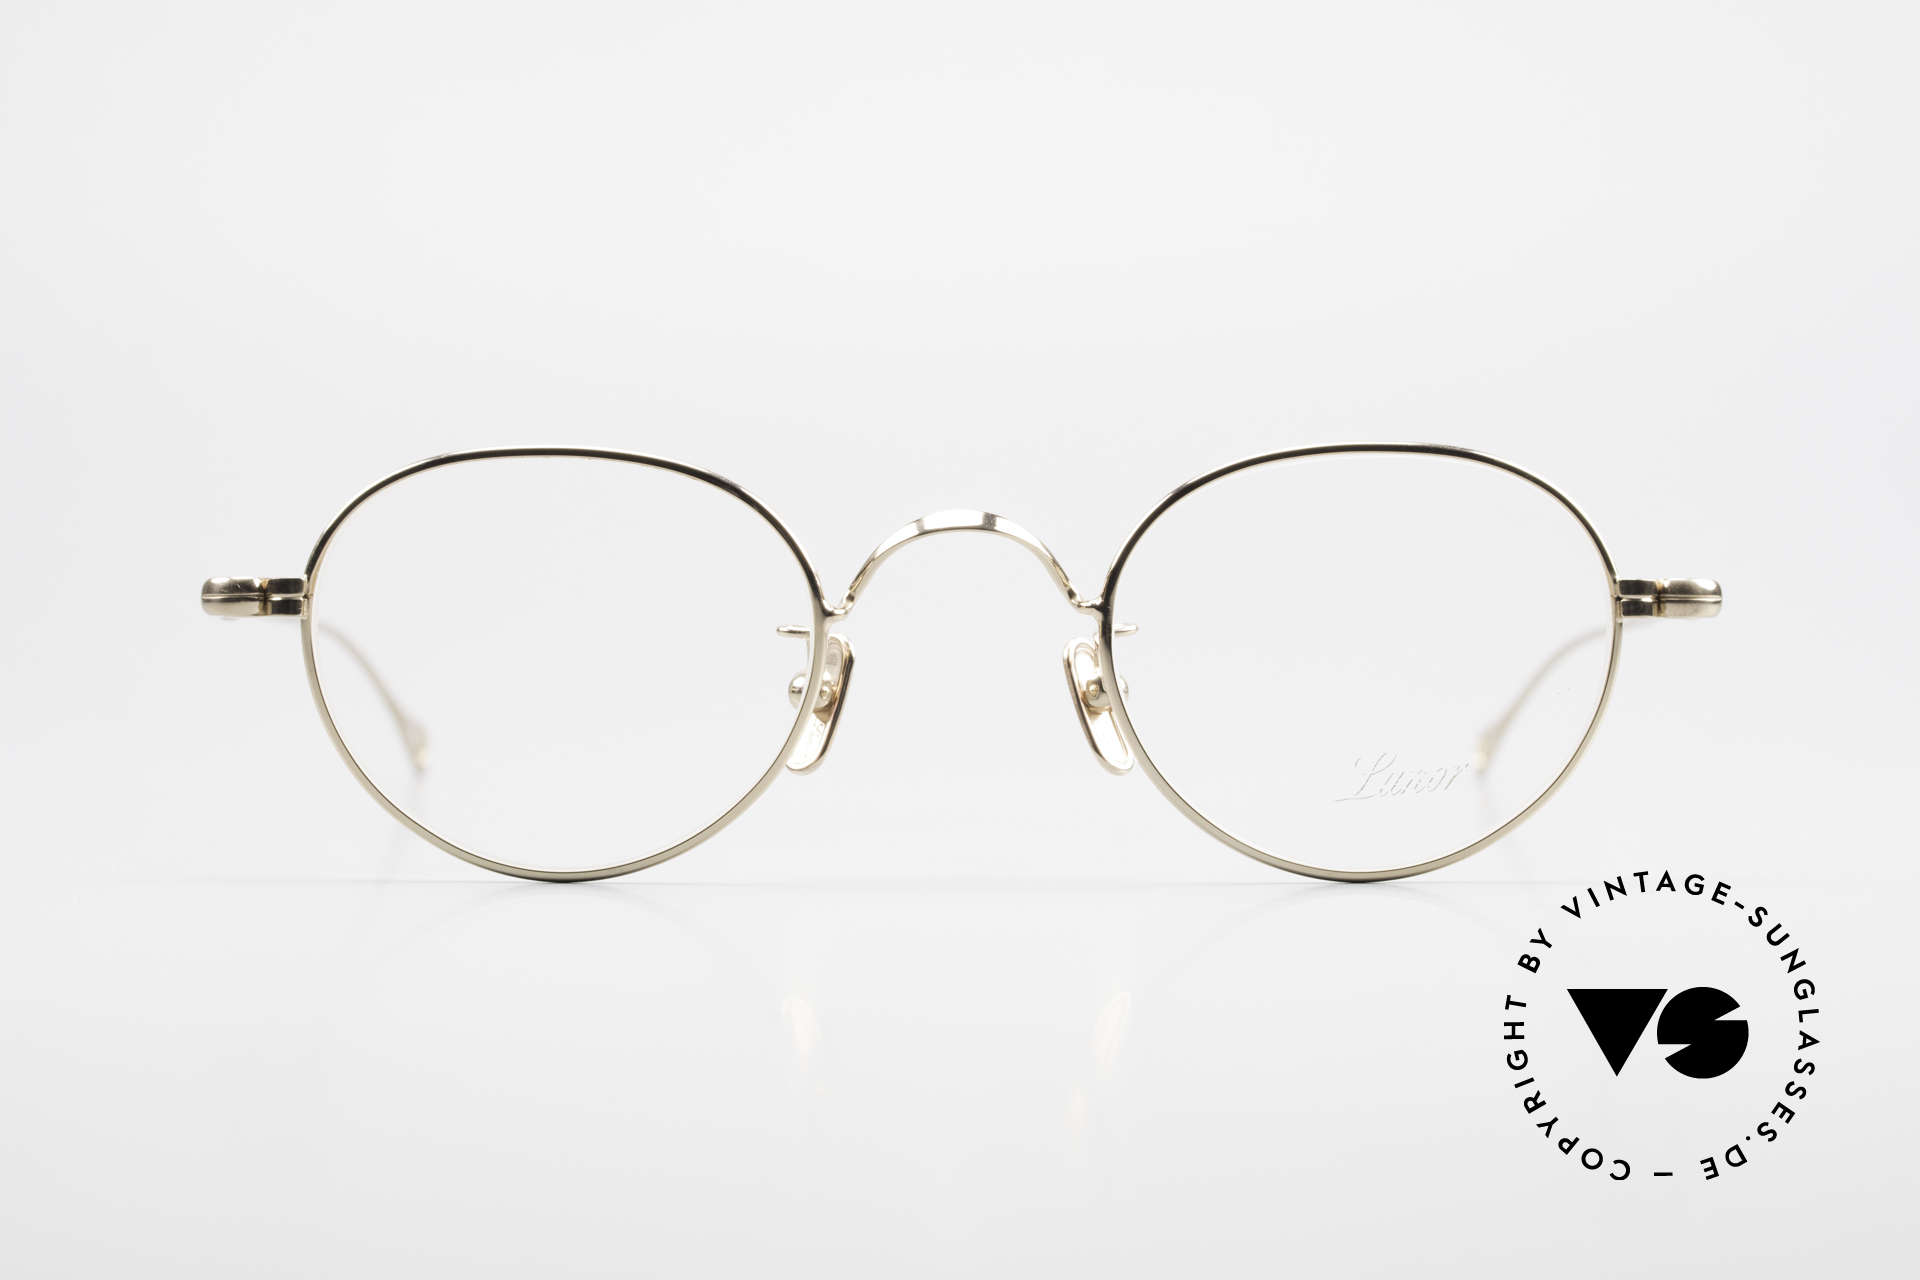 Lunor V 107 Panto Eyeglasses Gold Plated, without ostentatious logos (but in a timeless elegance), Made for Men